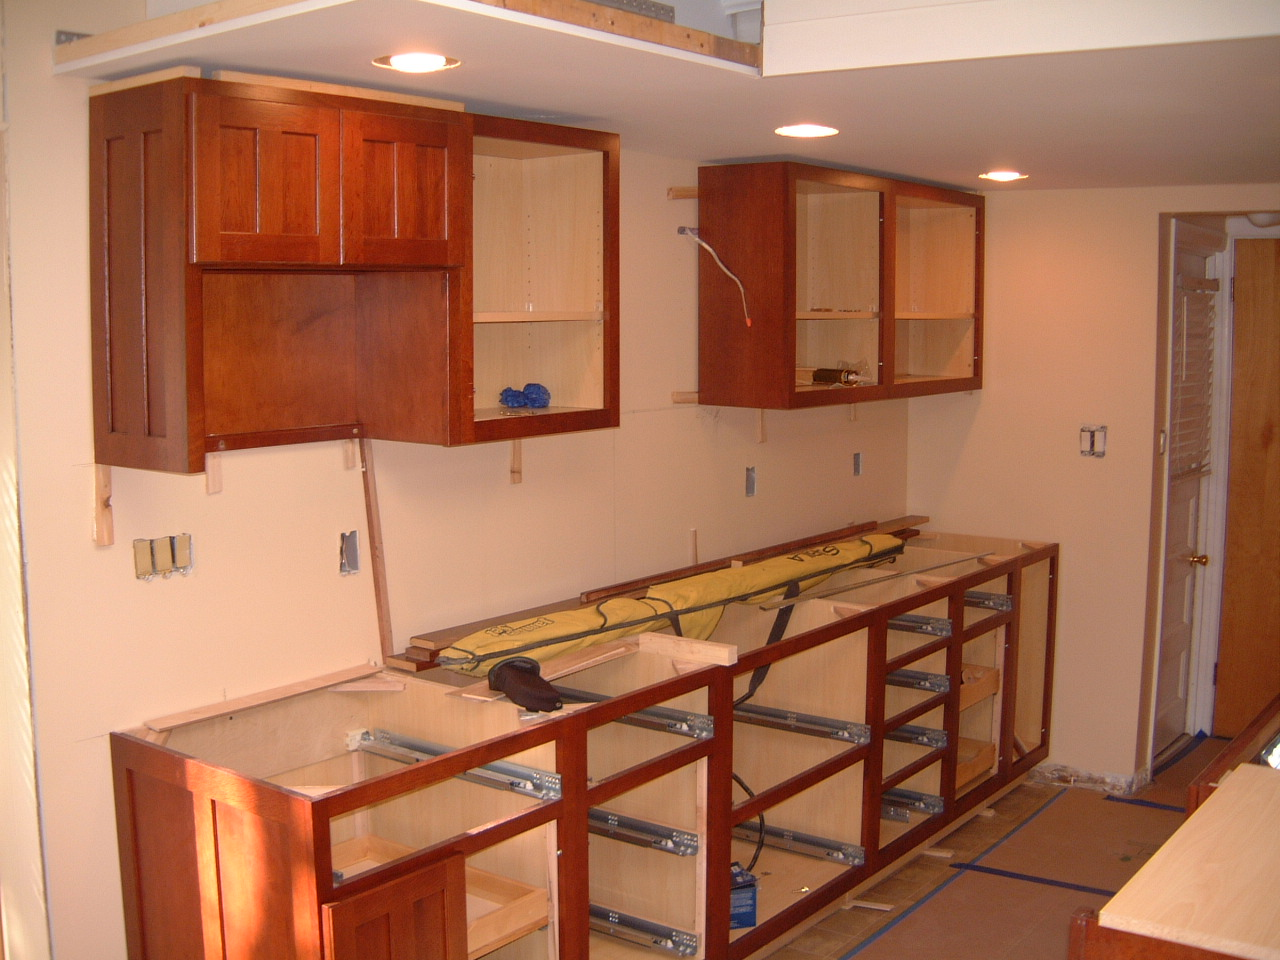 How To Install Kitchen Cabinet Hardware Springfield Kitchen Cabinet Install Remodeling Designs